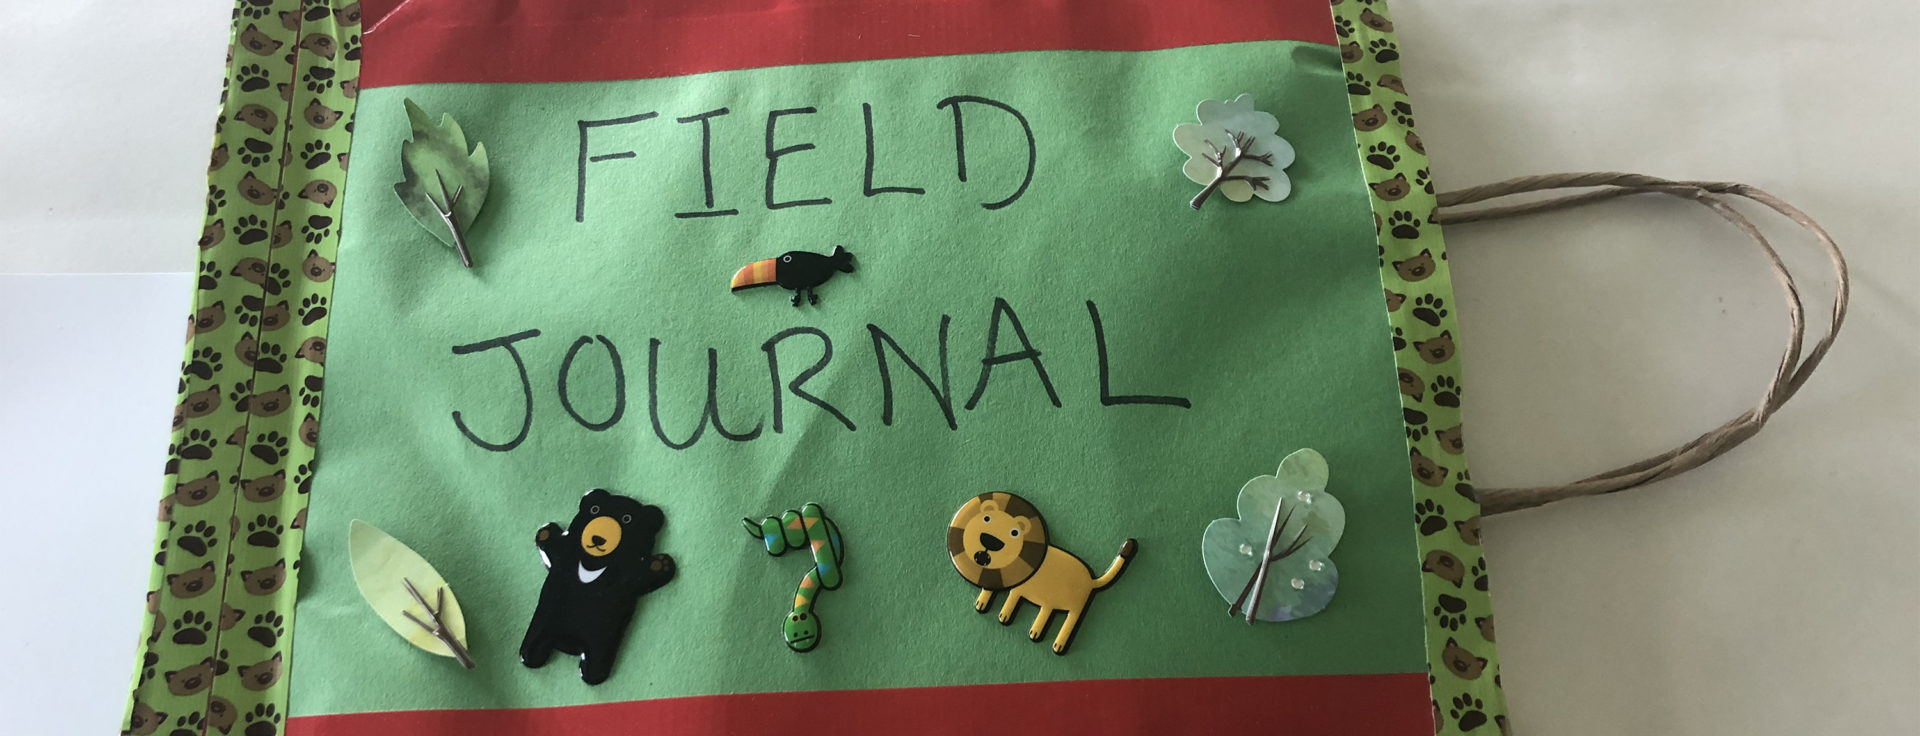 field journal decorated with natural images